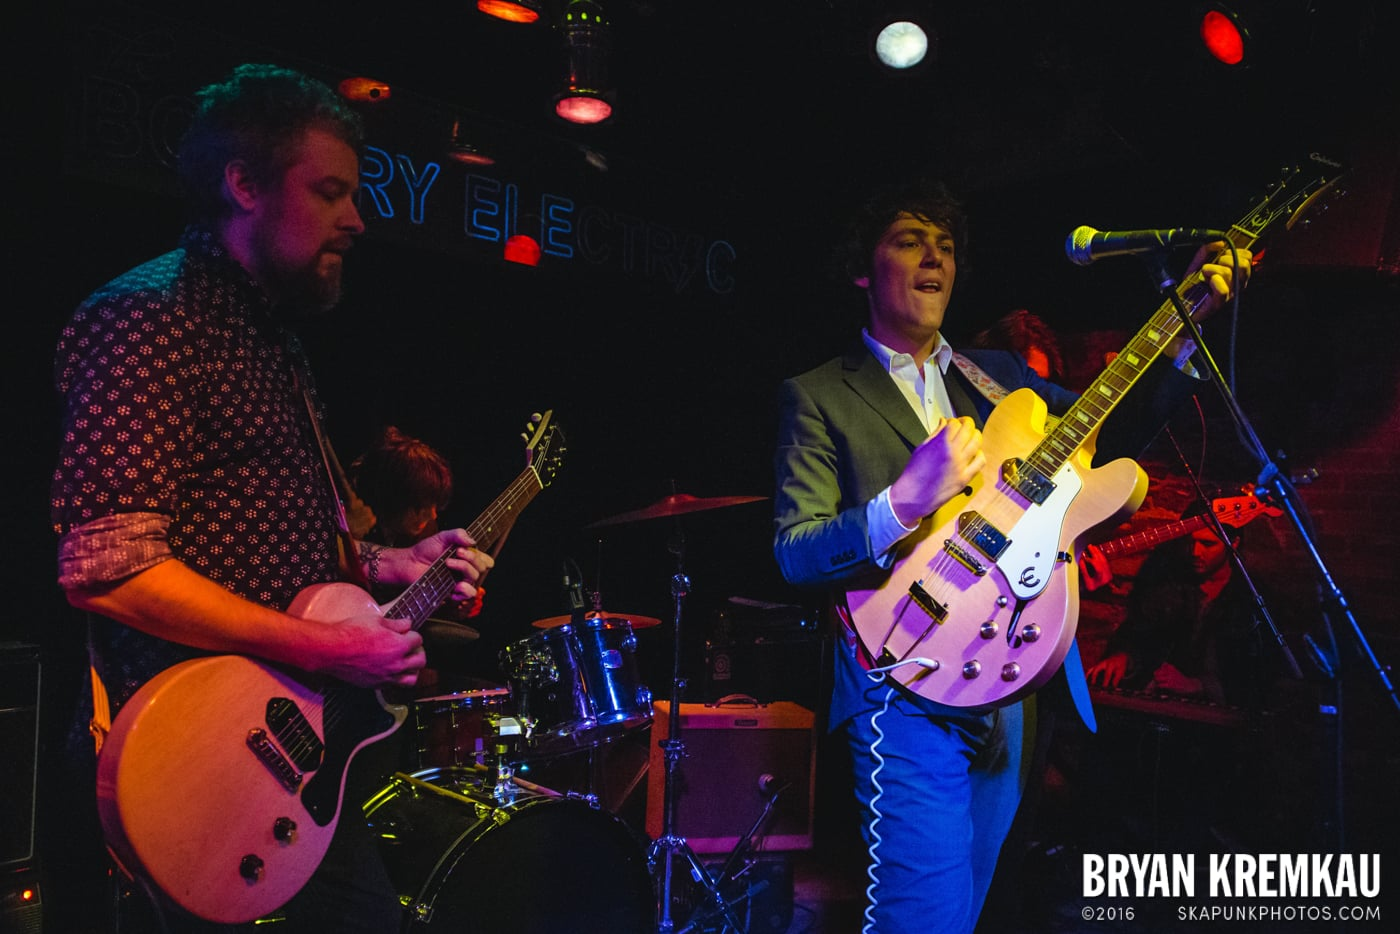 Trapper Schoepp & The Shades @ Bowery Electric, NYC - 11.20.14 (16)